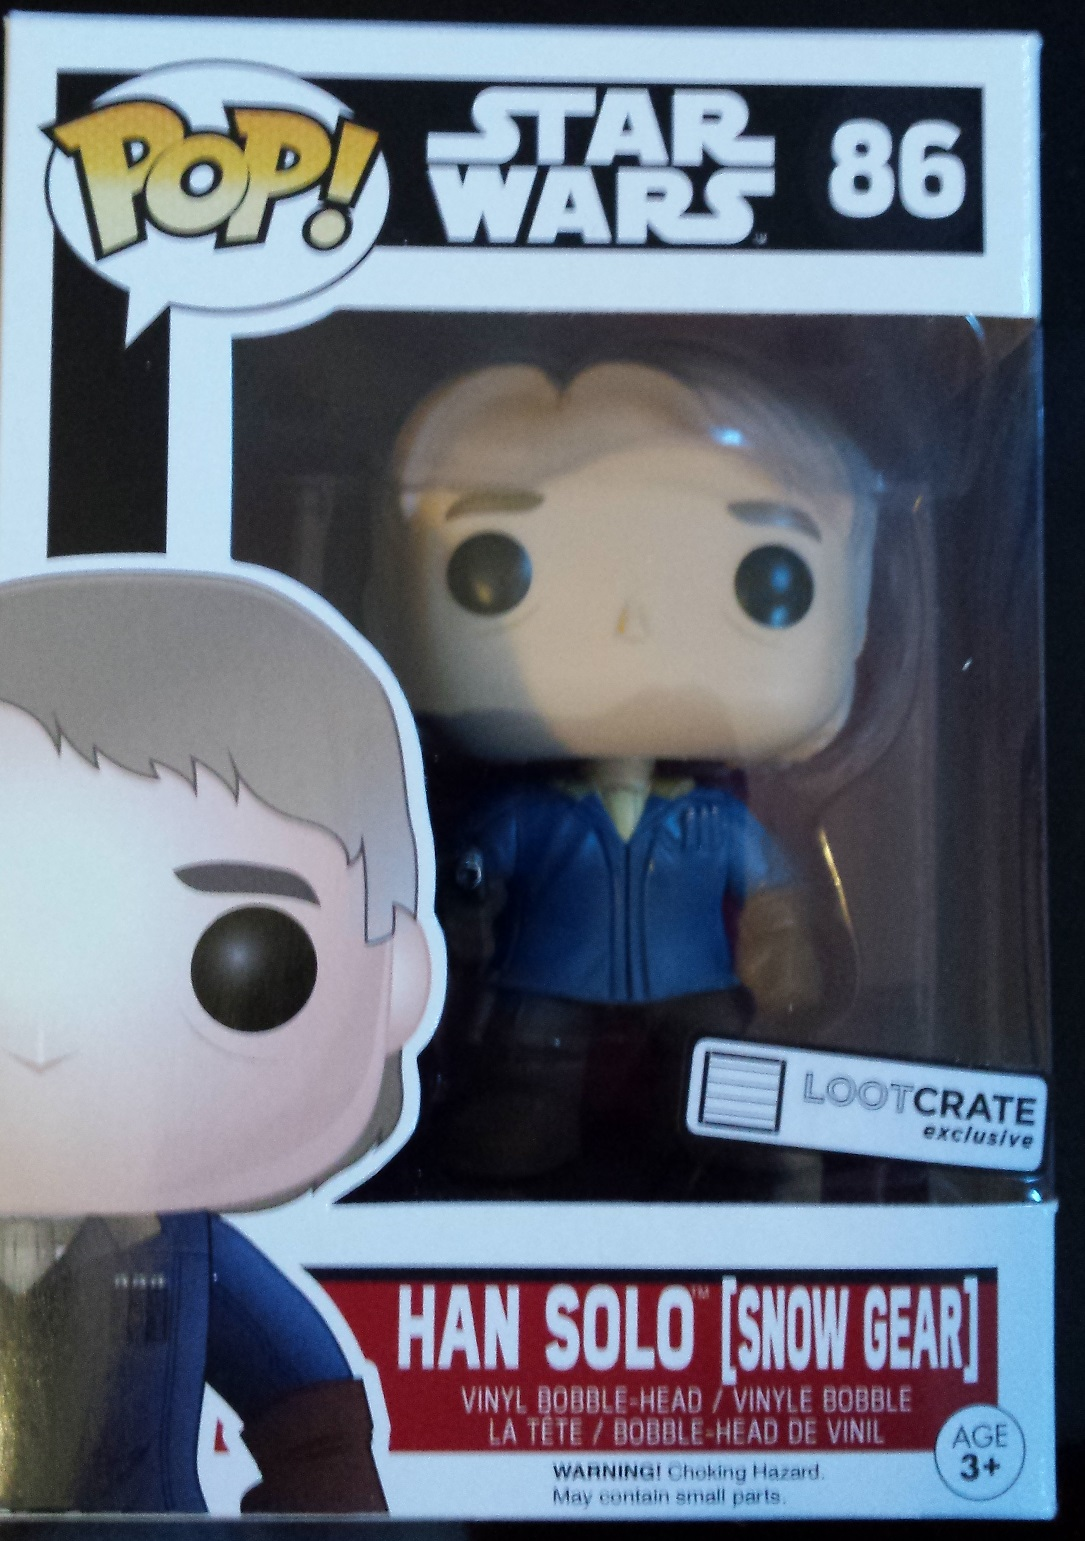 Han solo, pop! , star wars, loot crate, loot crate review, december loot crate, discovery loot crate